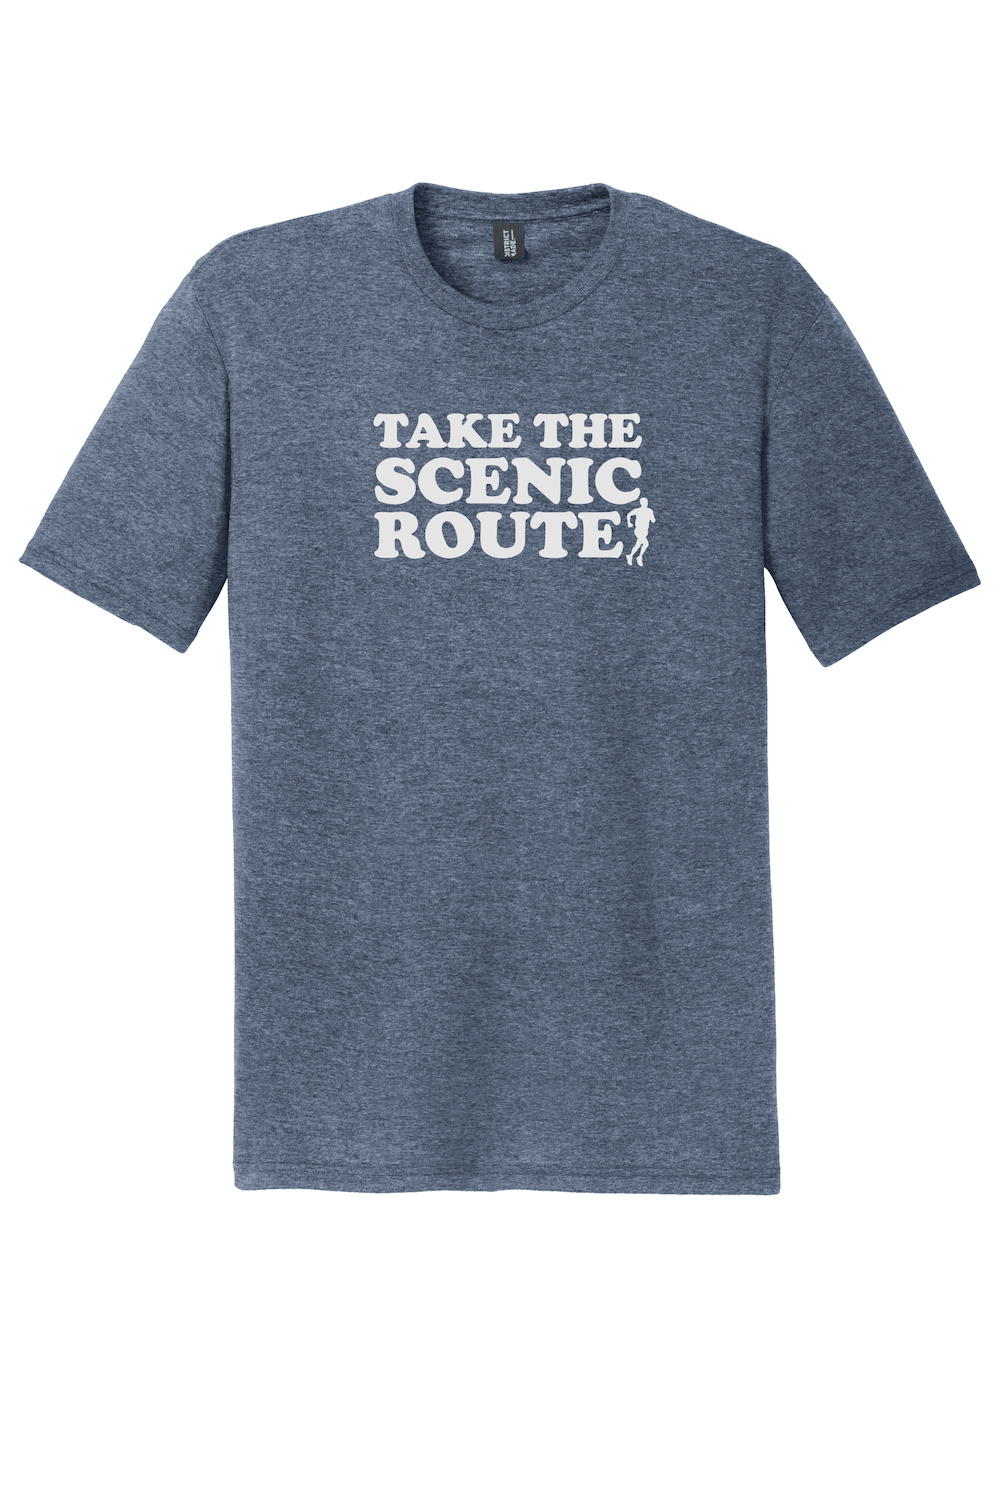 Mad Dash Creations Take the Scenic Route T-shirt - Men